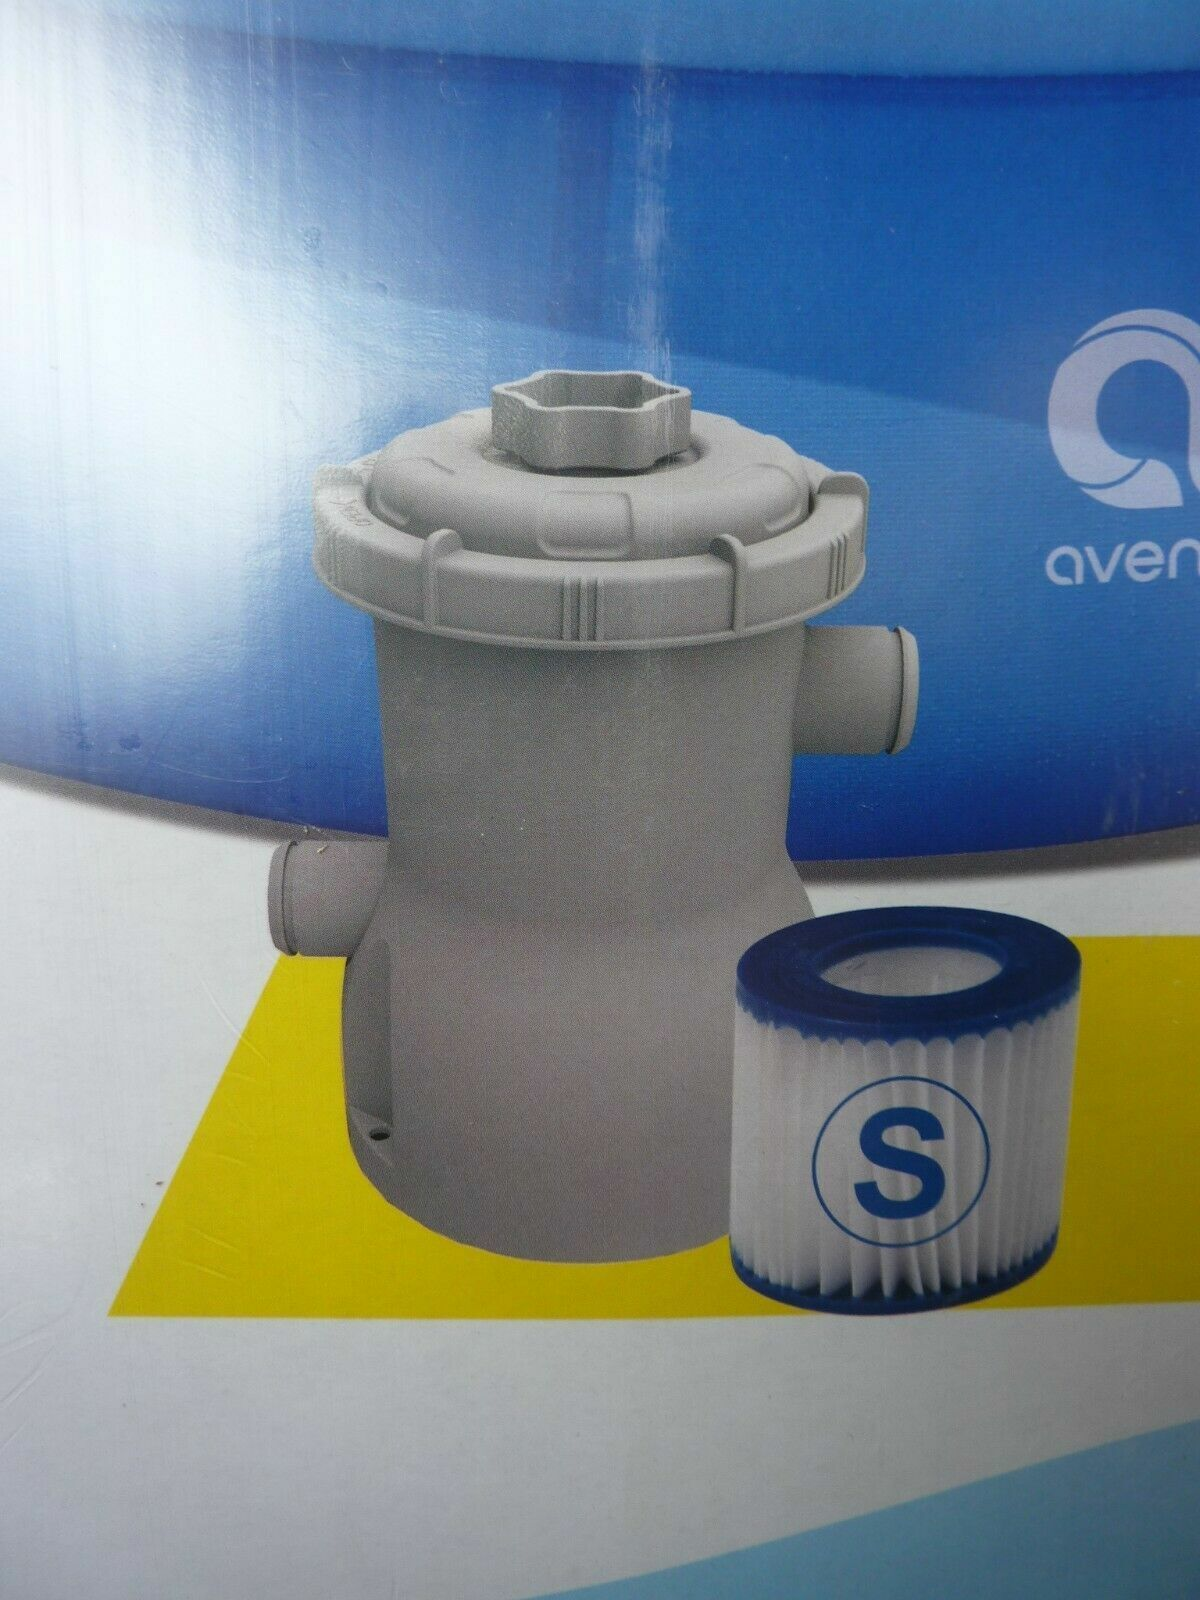 New! Avenli 3M Swimming Pool + FILTER 10ft X 30 Above Ground Swimming Pool